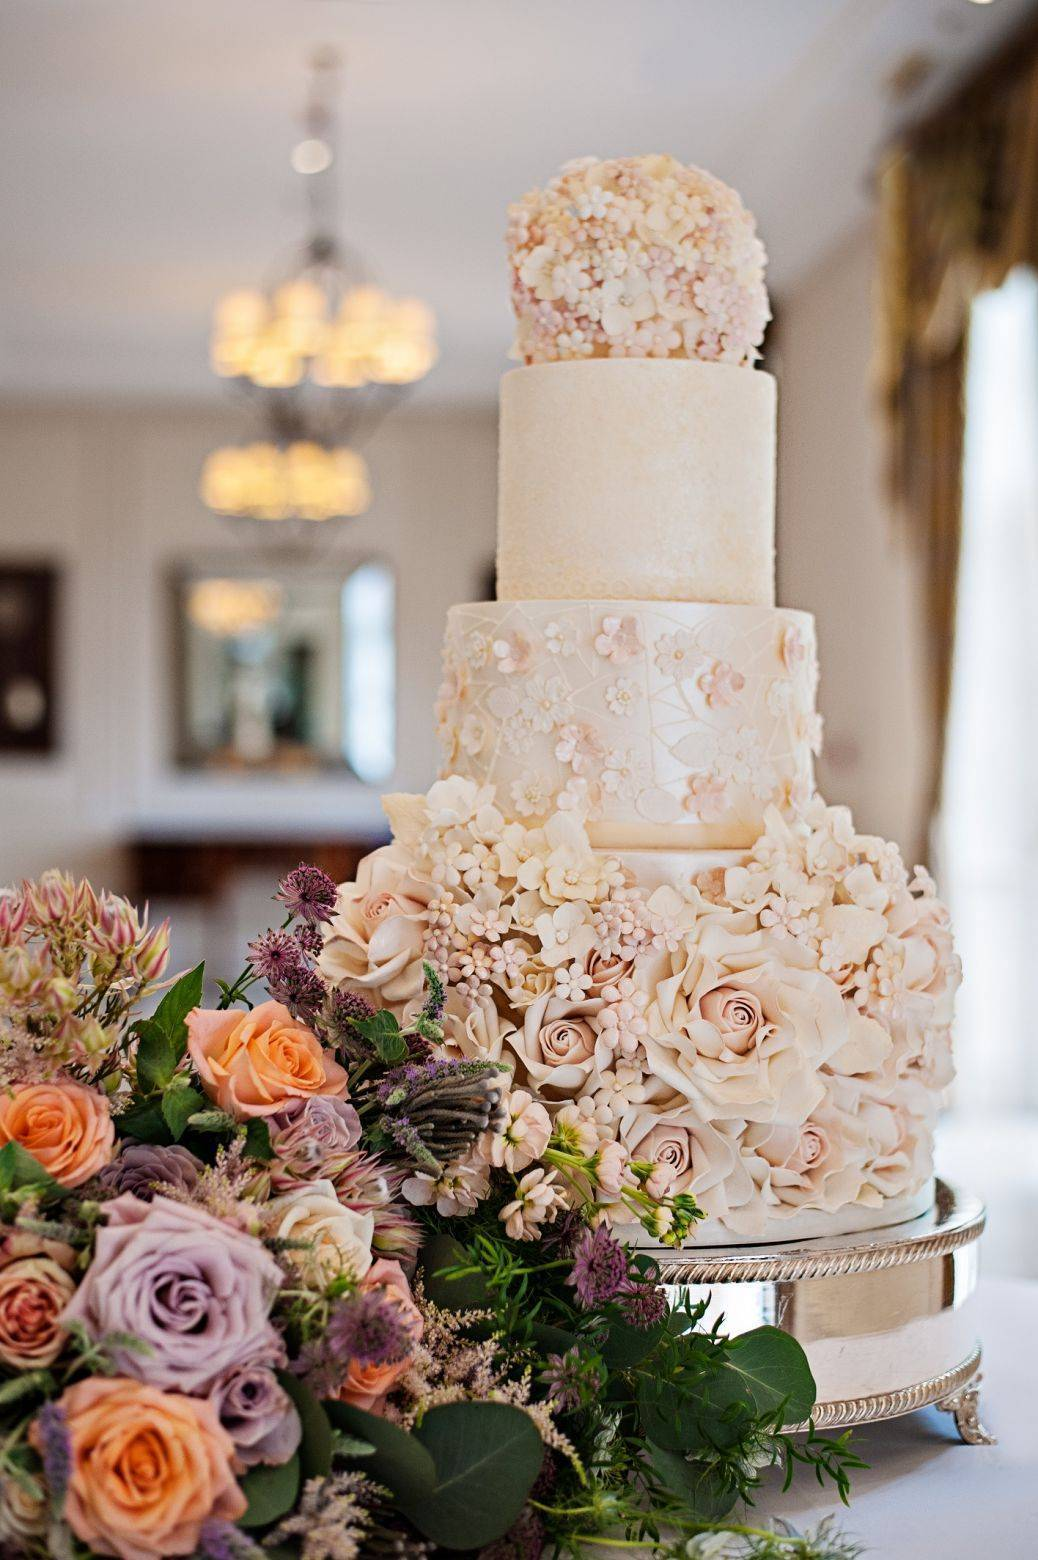 Such delicate sugar work on an amazing cake